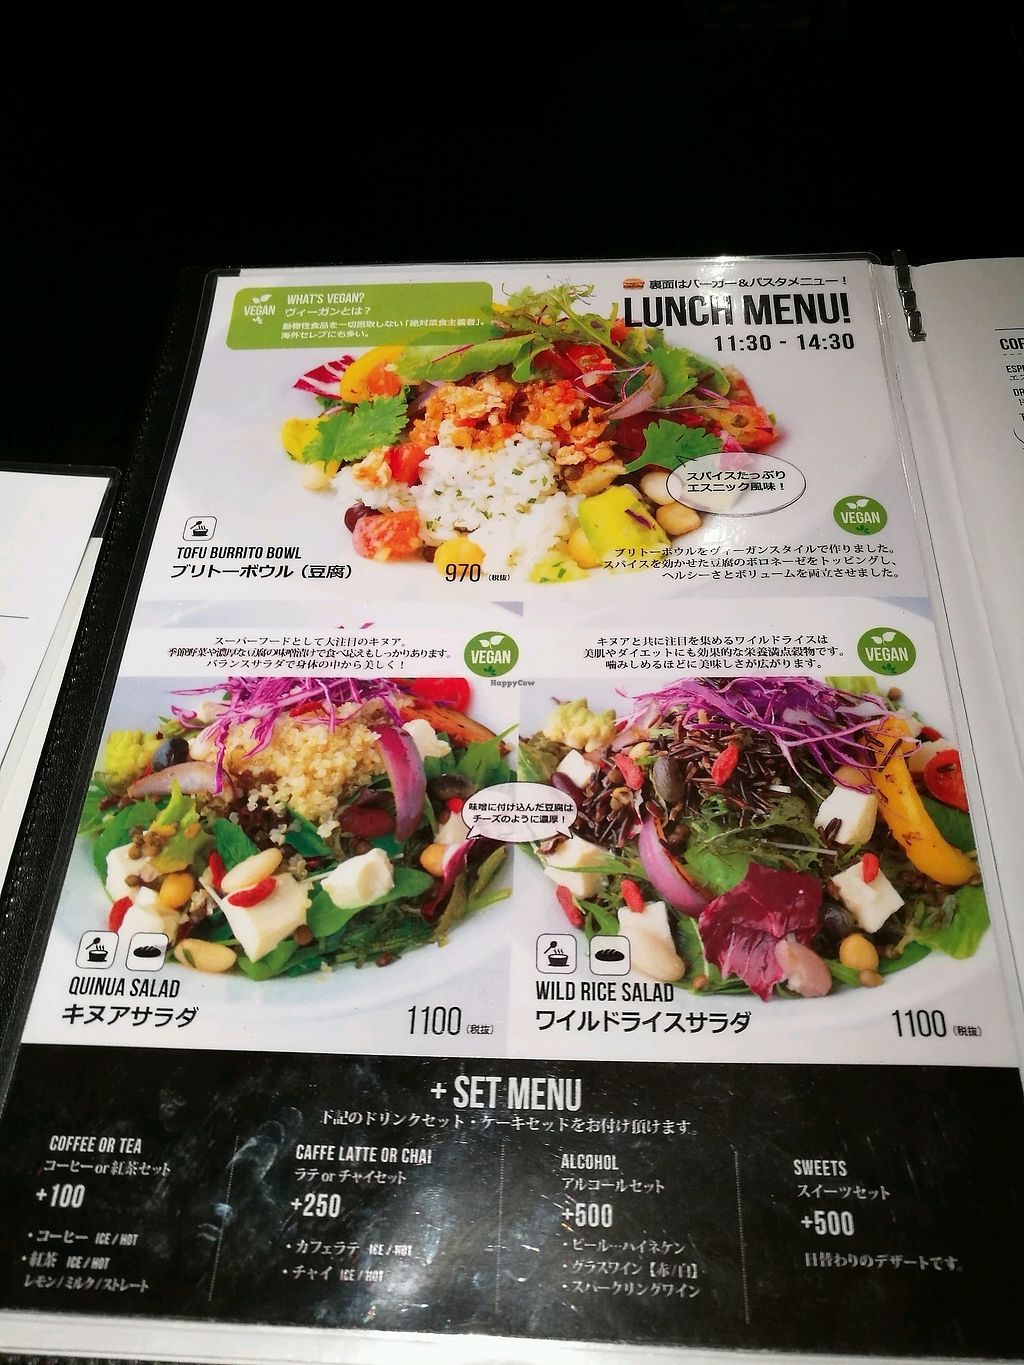 "Photo of Shakers Cafe Lounge  by <a href=""/members/profile/Felicious"">Felicious</a> <br/>Vegan lunch menu <br/> April 11, 2018  - <a href='/contact/abuse/image/110454/383873'>Report</a>"